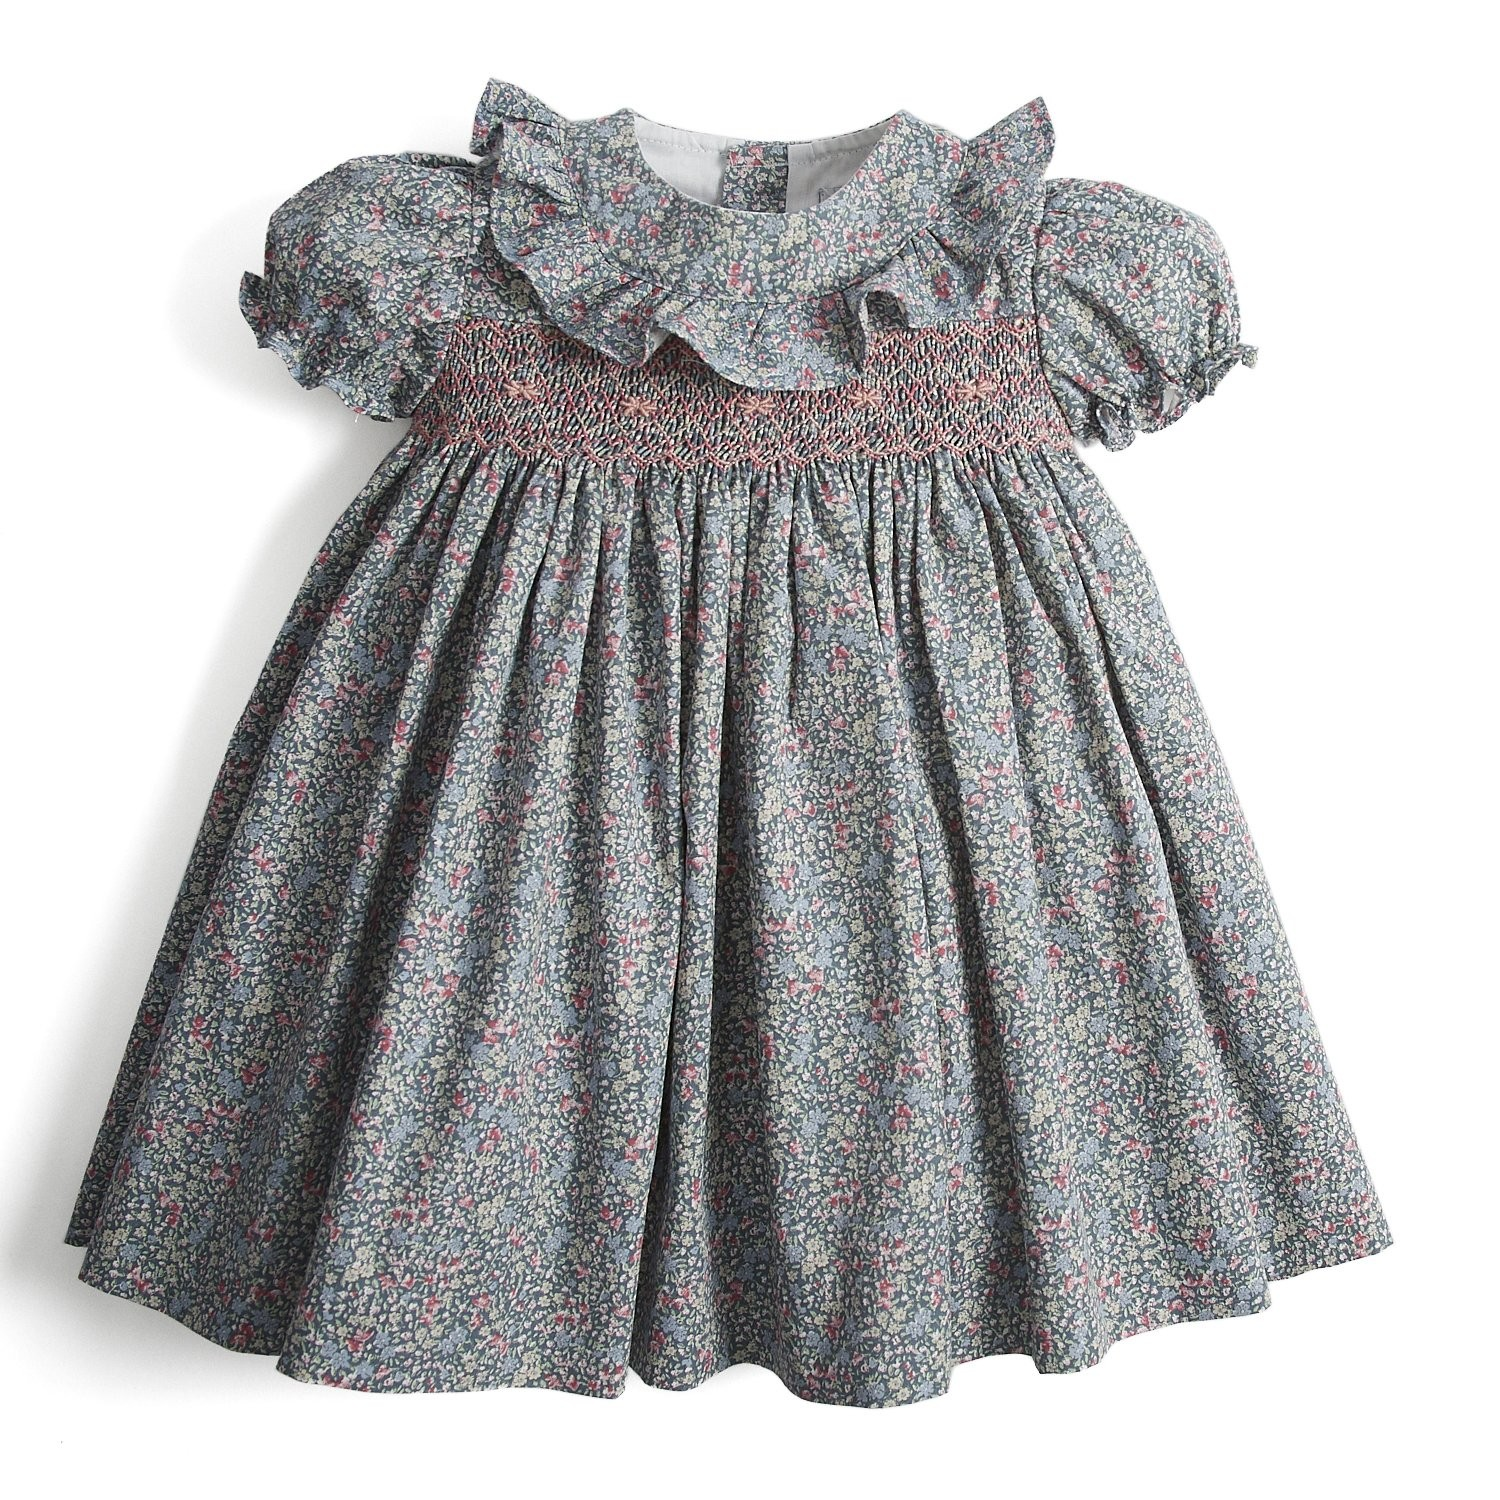 1345Happy Birthday Princess Charlotte! Gifts every little girl will want